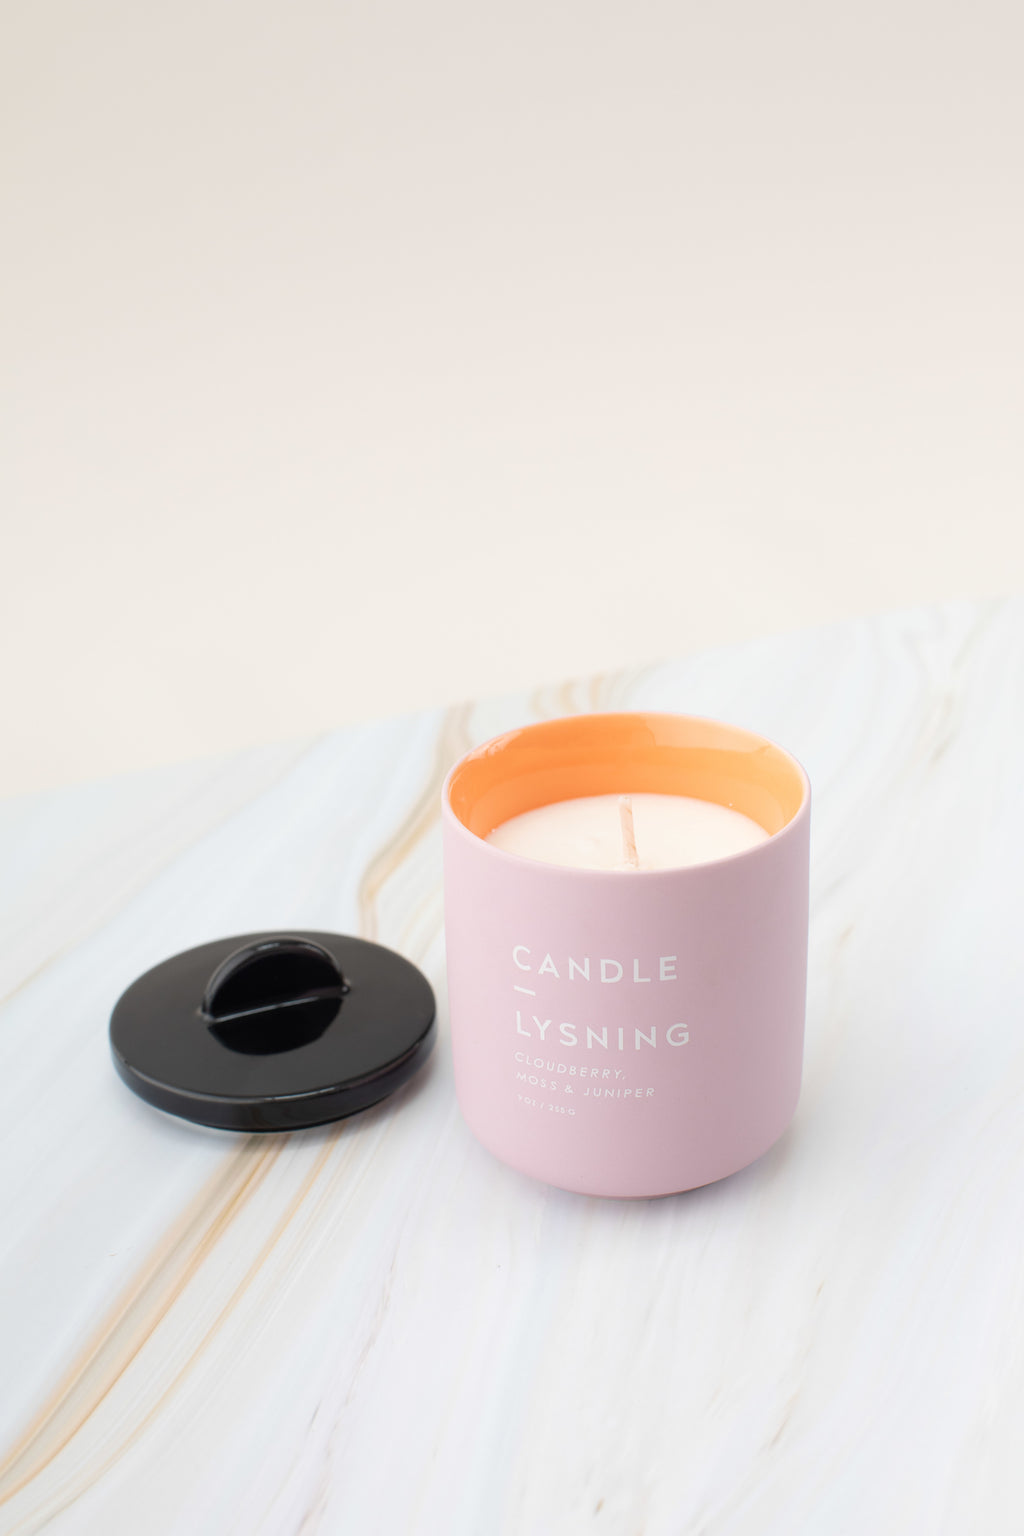 Lysning Candle